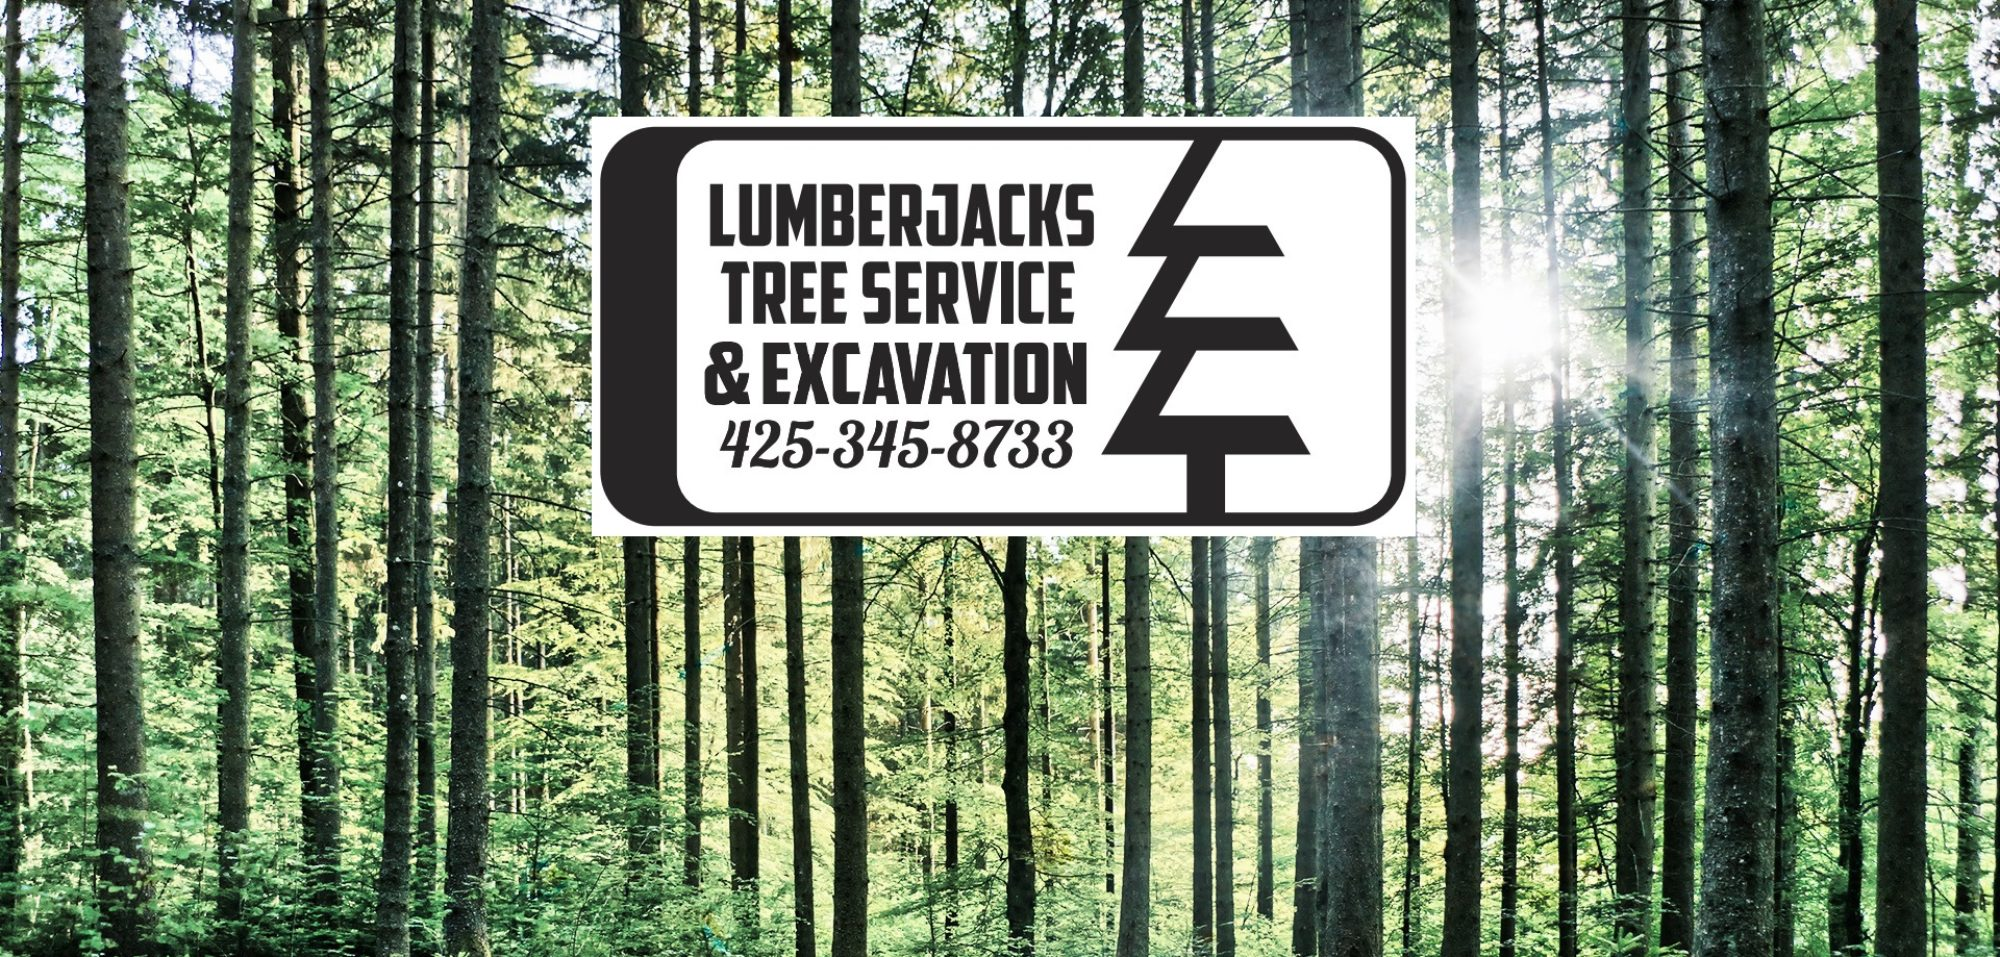 Lumberjacks Tree Service & Excavation